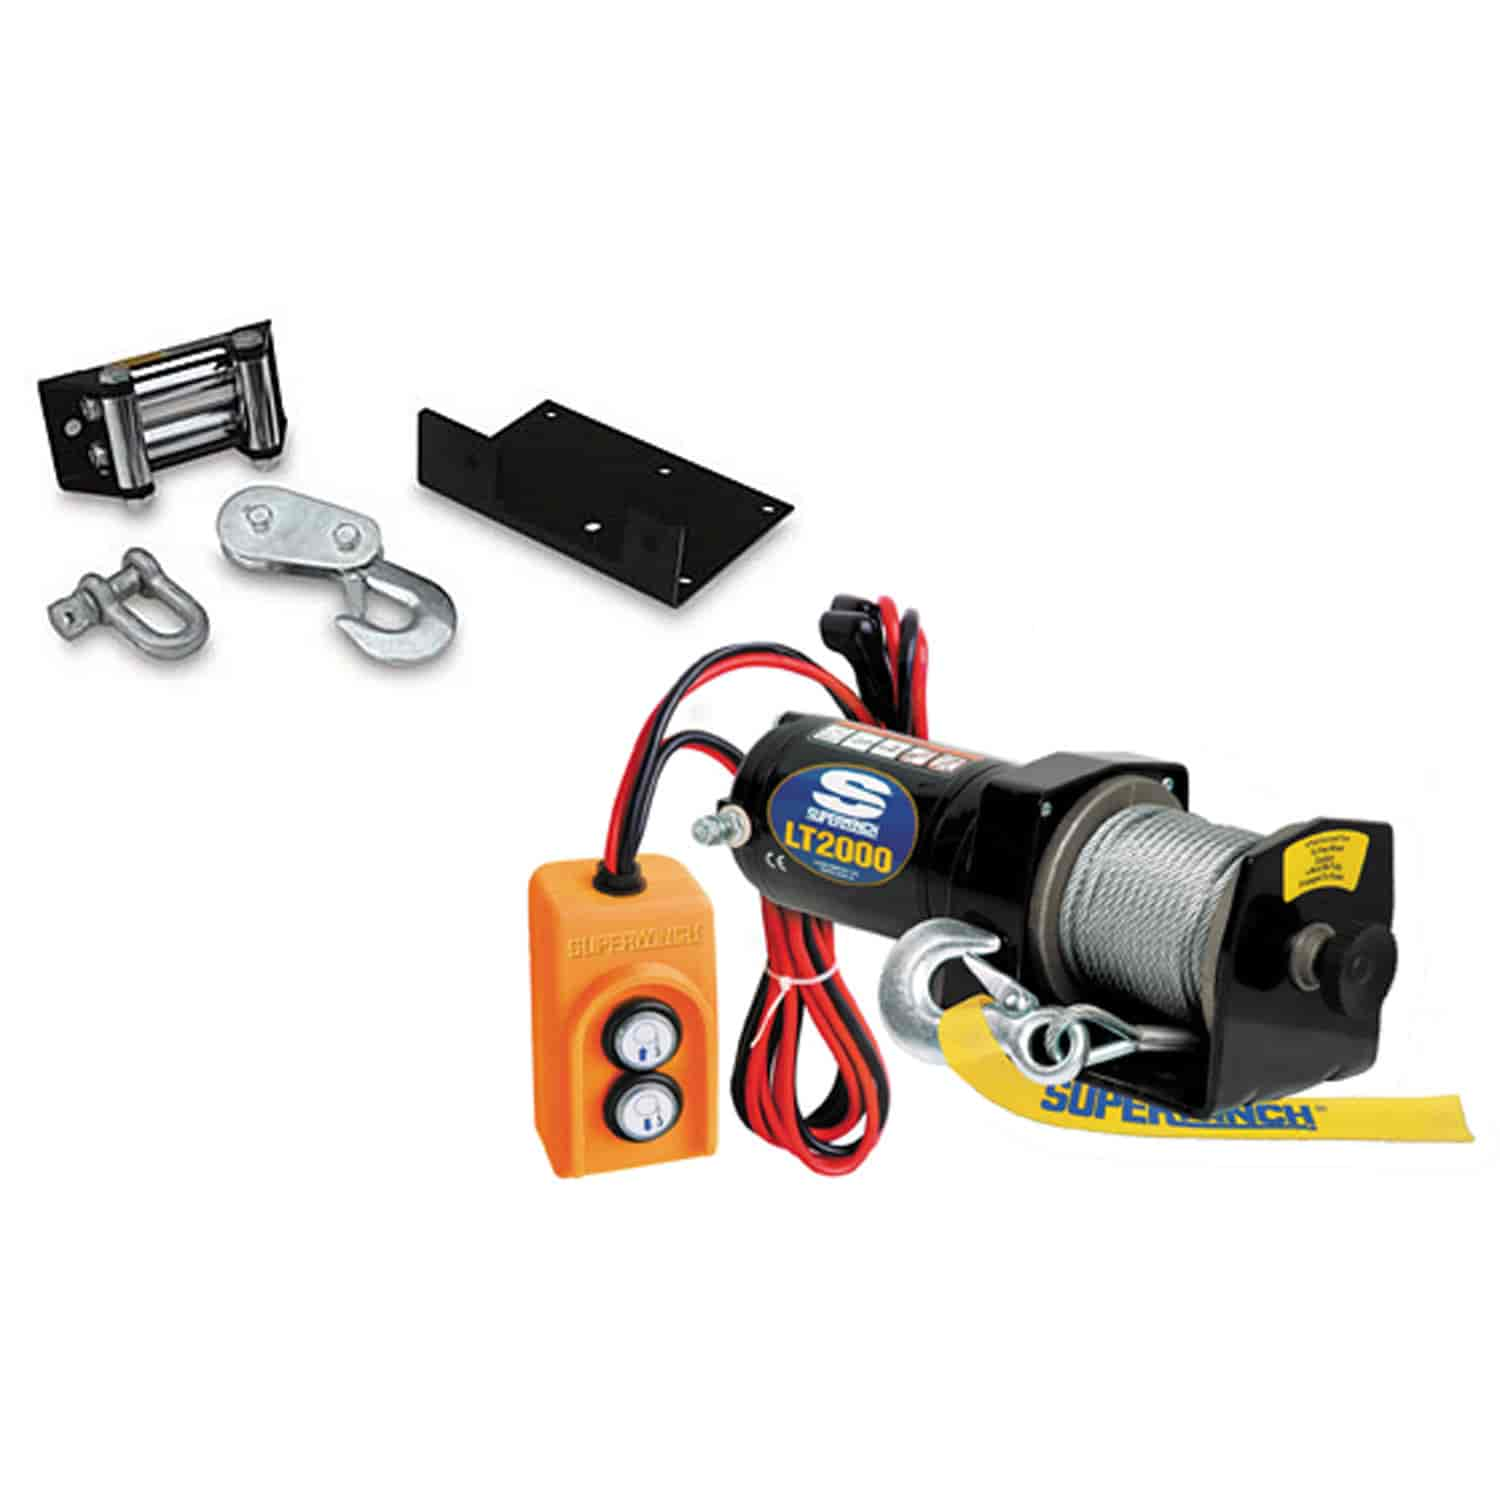 Superwinch 1220210K1 - Superwinch LT2000 Winch